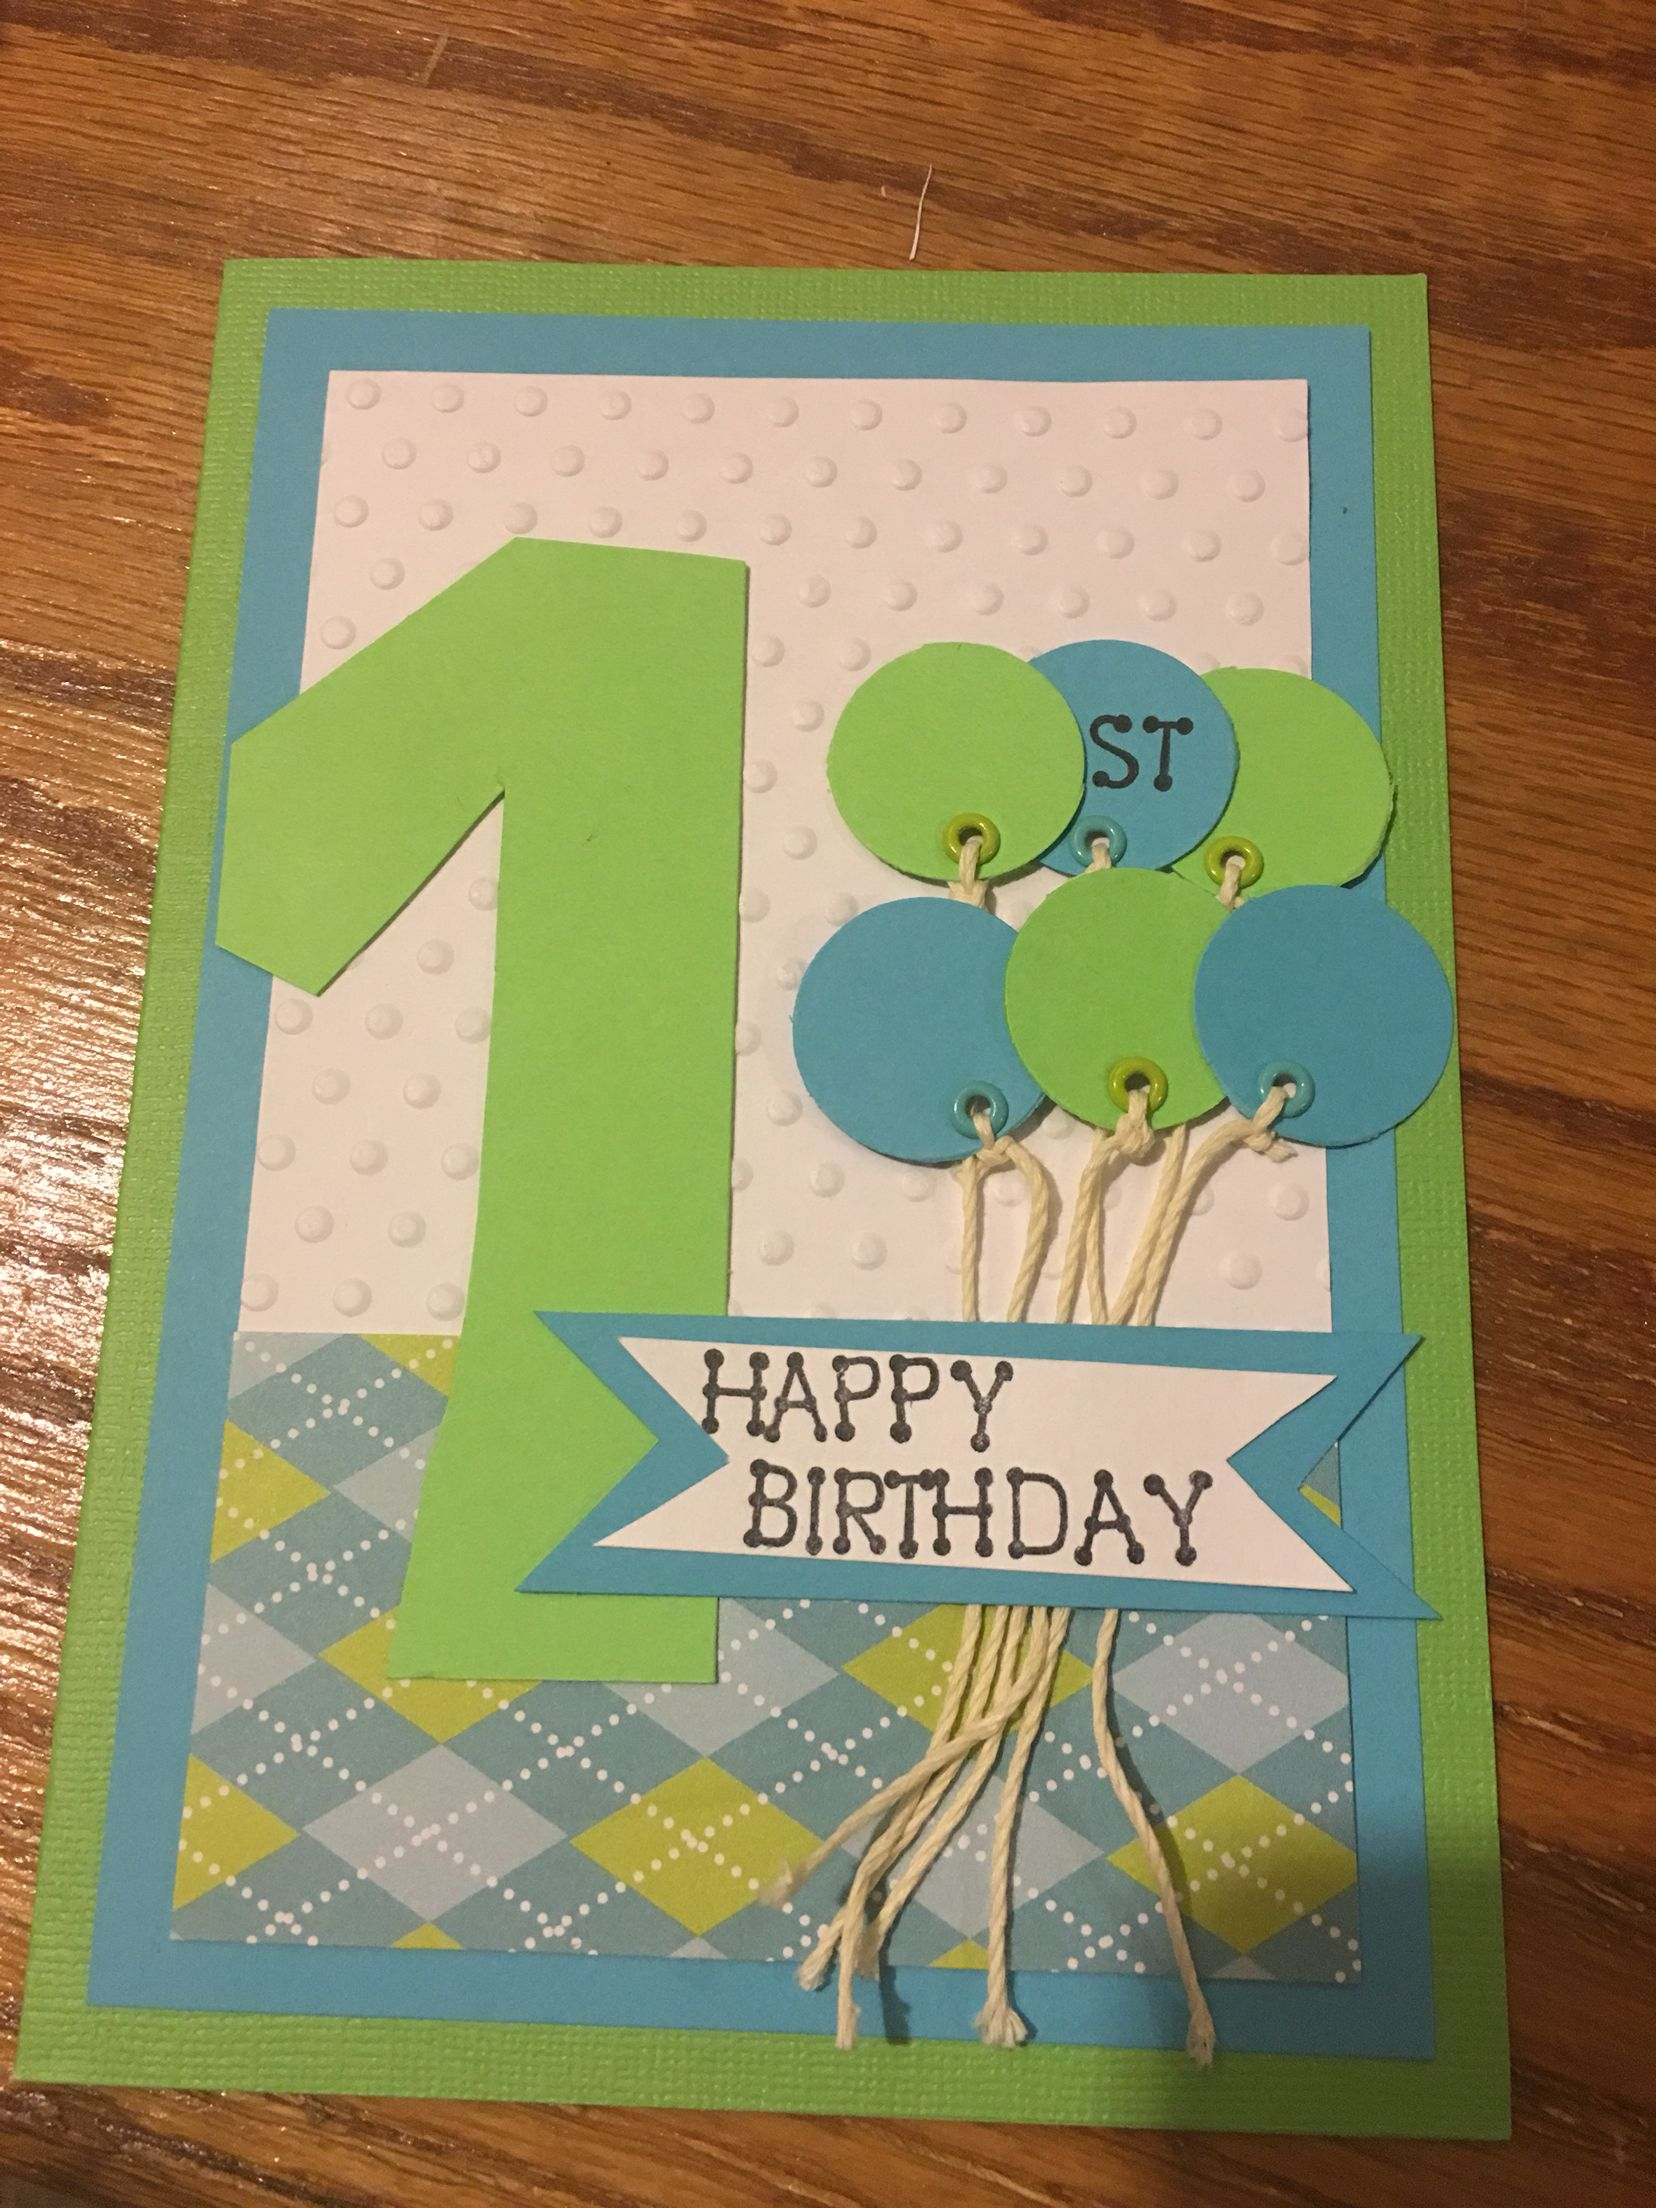 One year old little boy birthday card children cards pinterest one year old little boy birthday card bookmarktalkfo Images